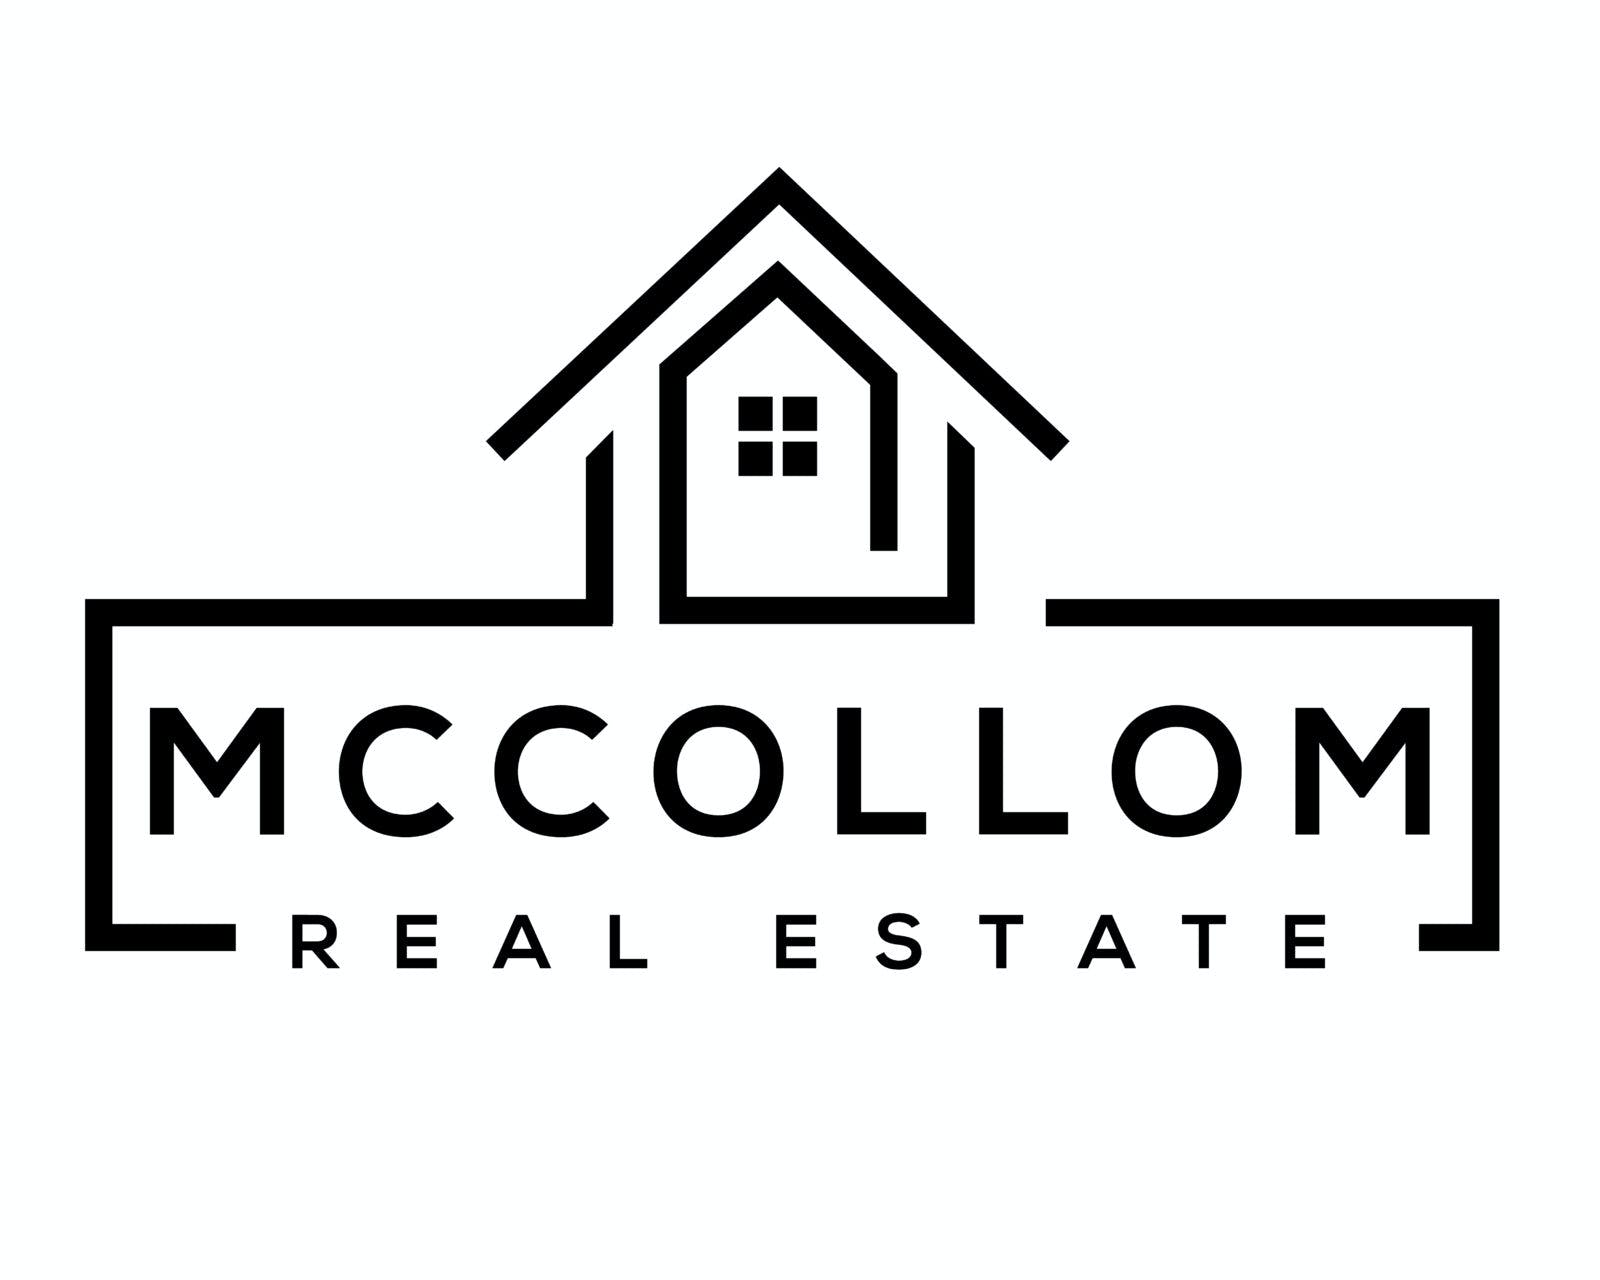 McCollom Real Estate Ltd.